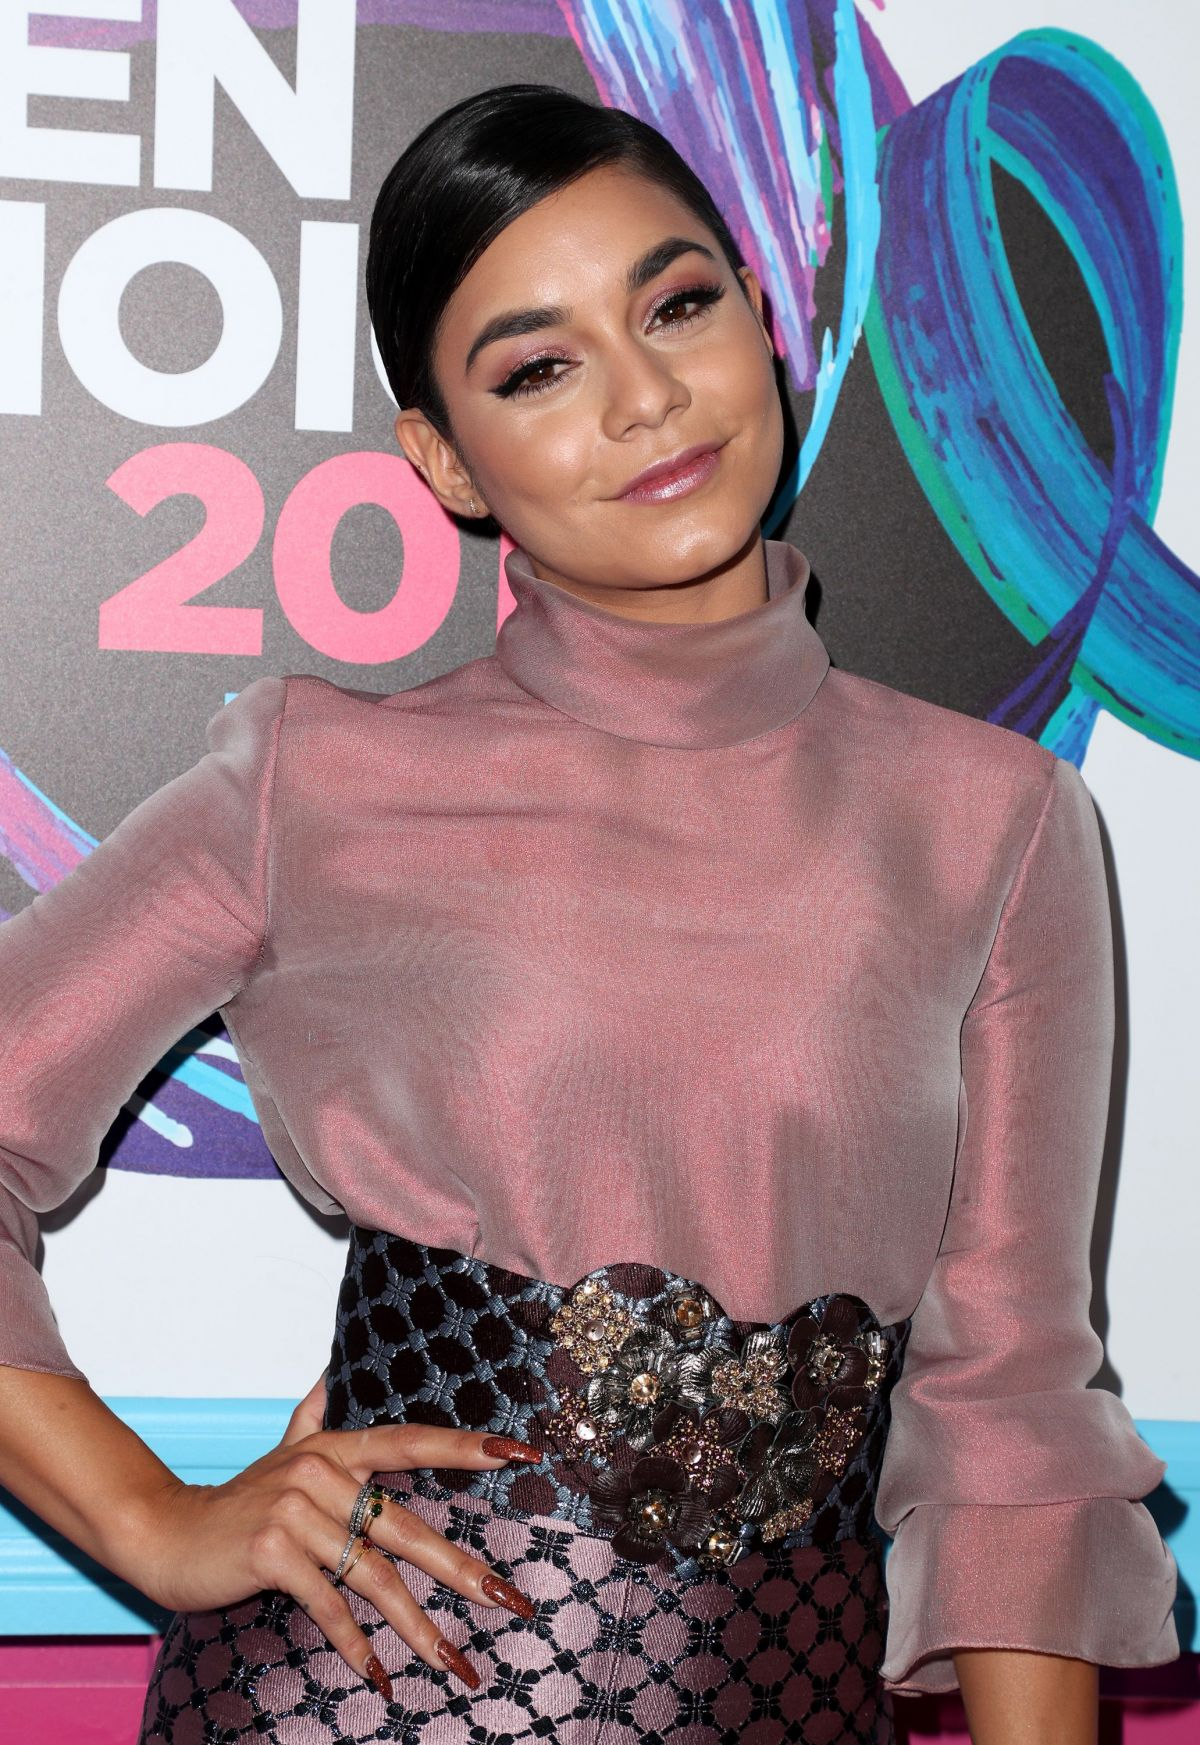 VANESSA HUDGENS at Teen Choice Awards 2017 in Los Angeles 08/13/2017